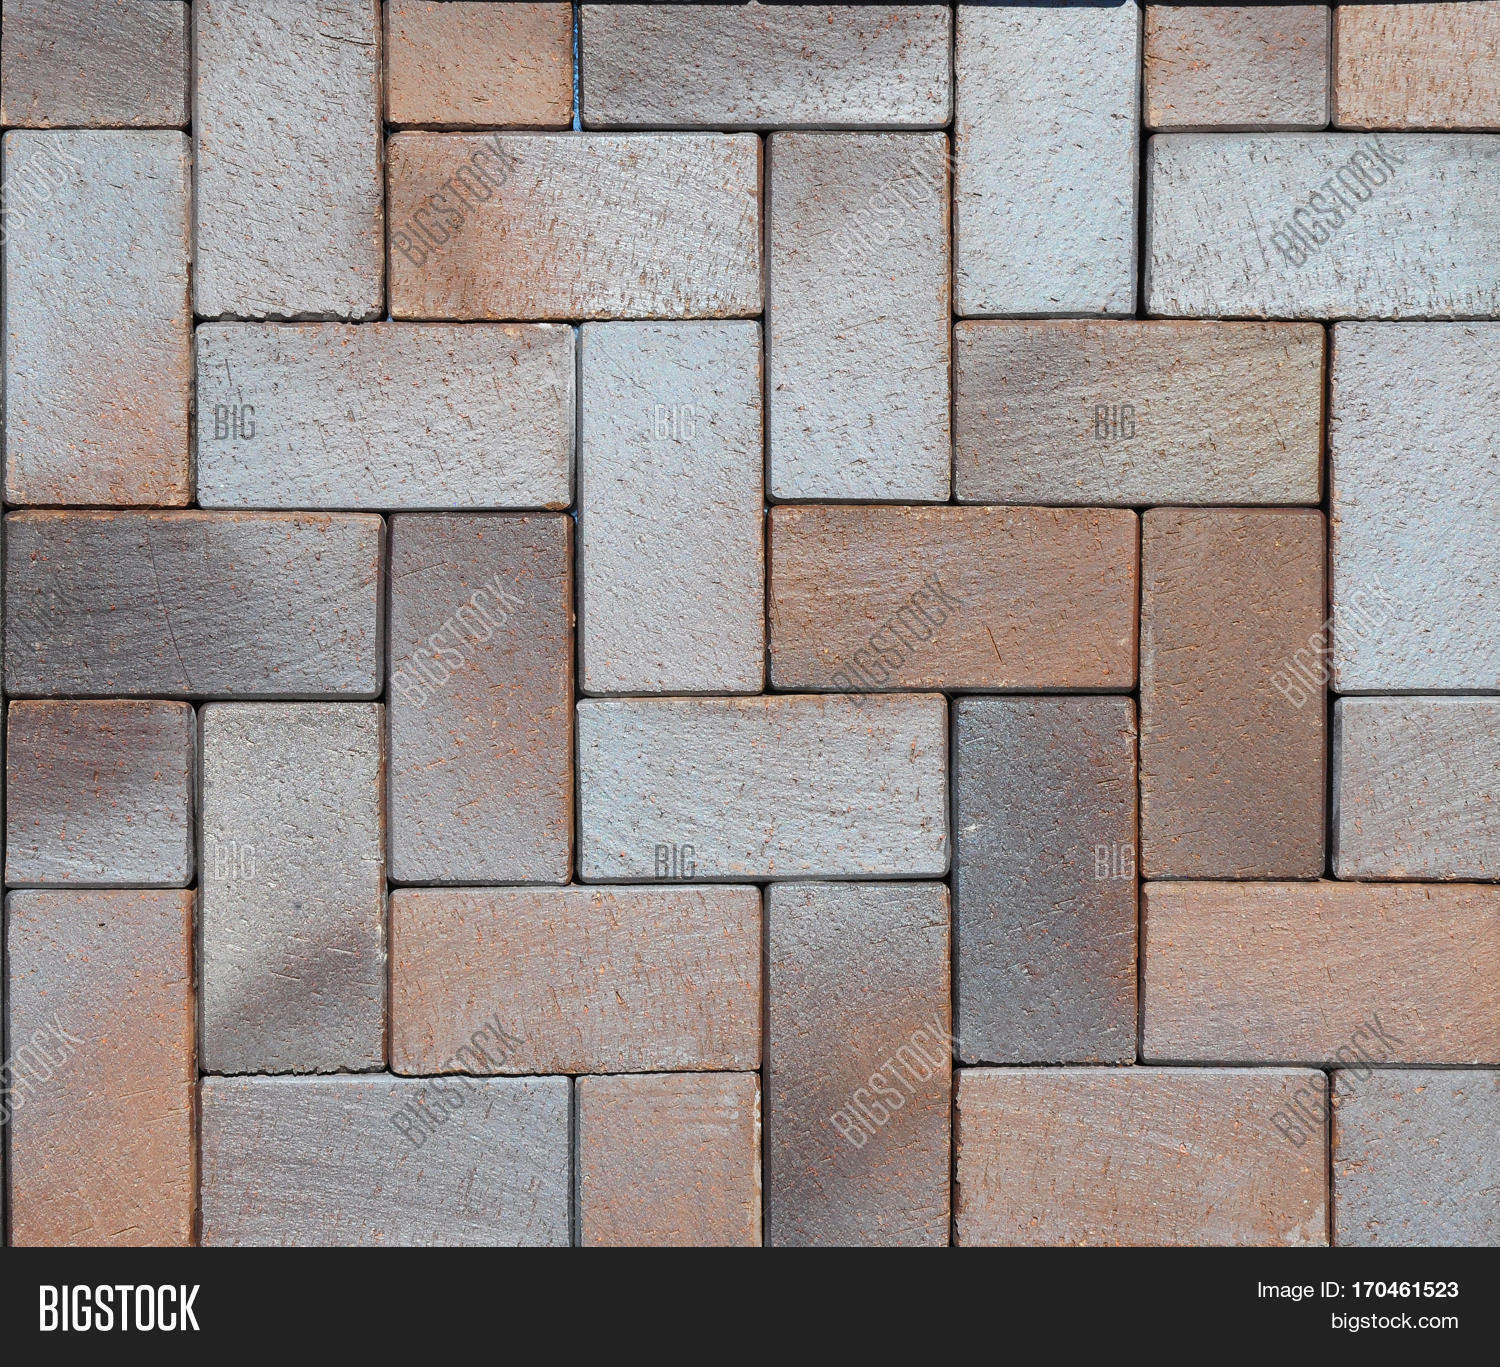 Paving stones pattern image photo free trial bigstock for Paving planner